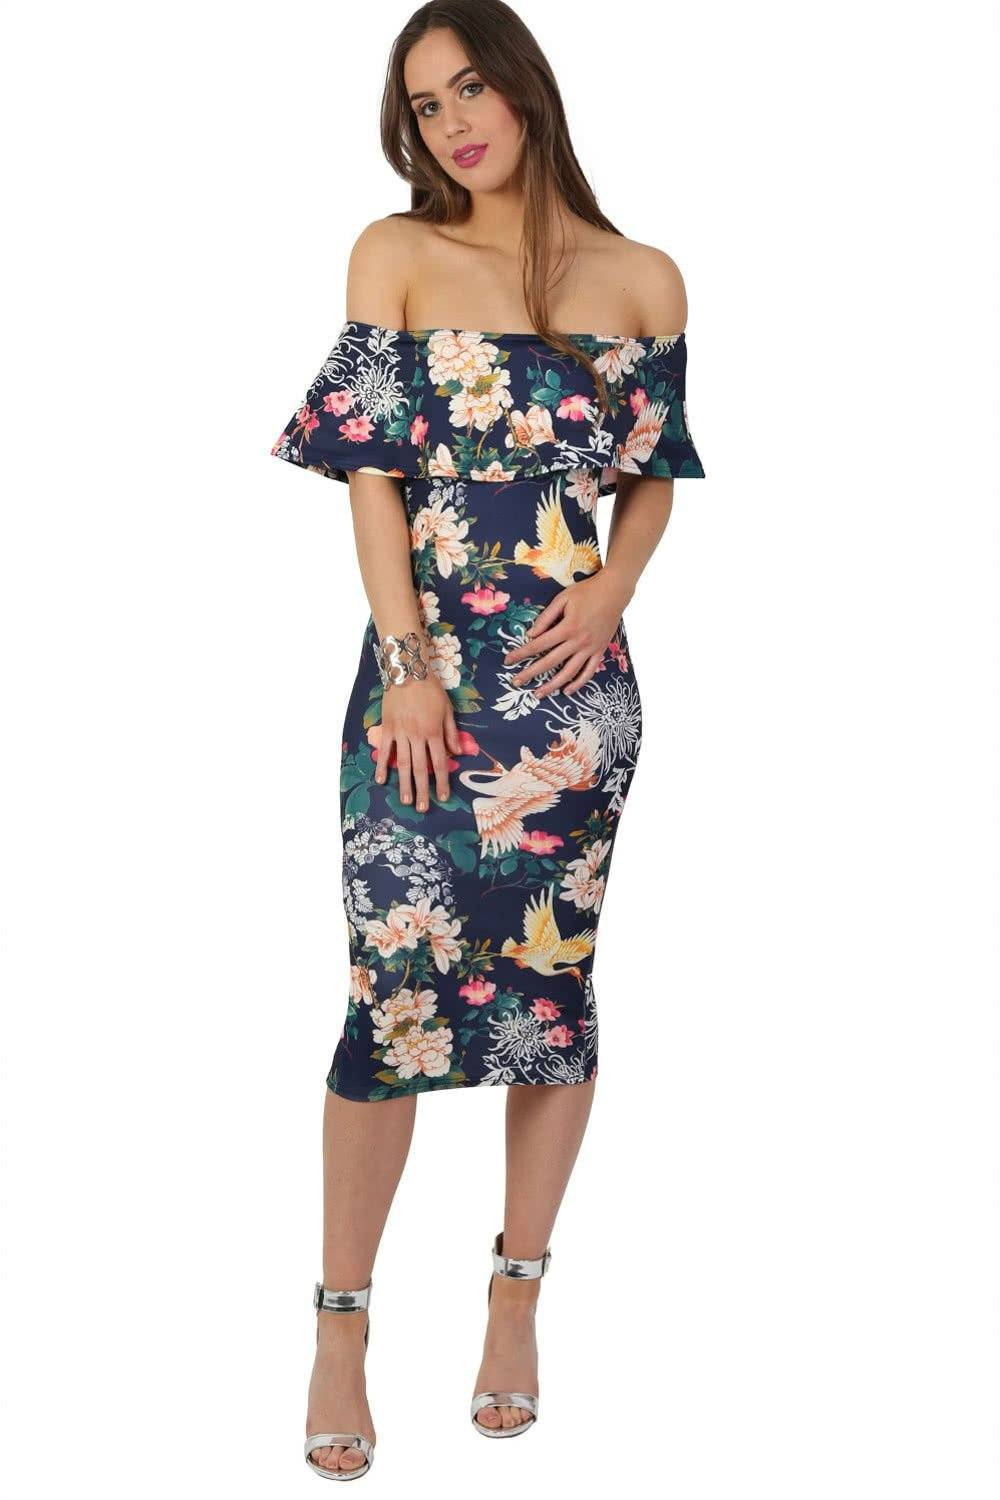 Oriental Floral Bardot Frill Bodycon Midi Dress in Navy Blue 0